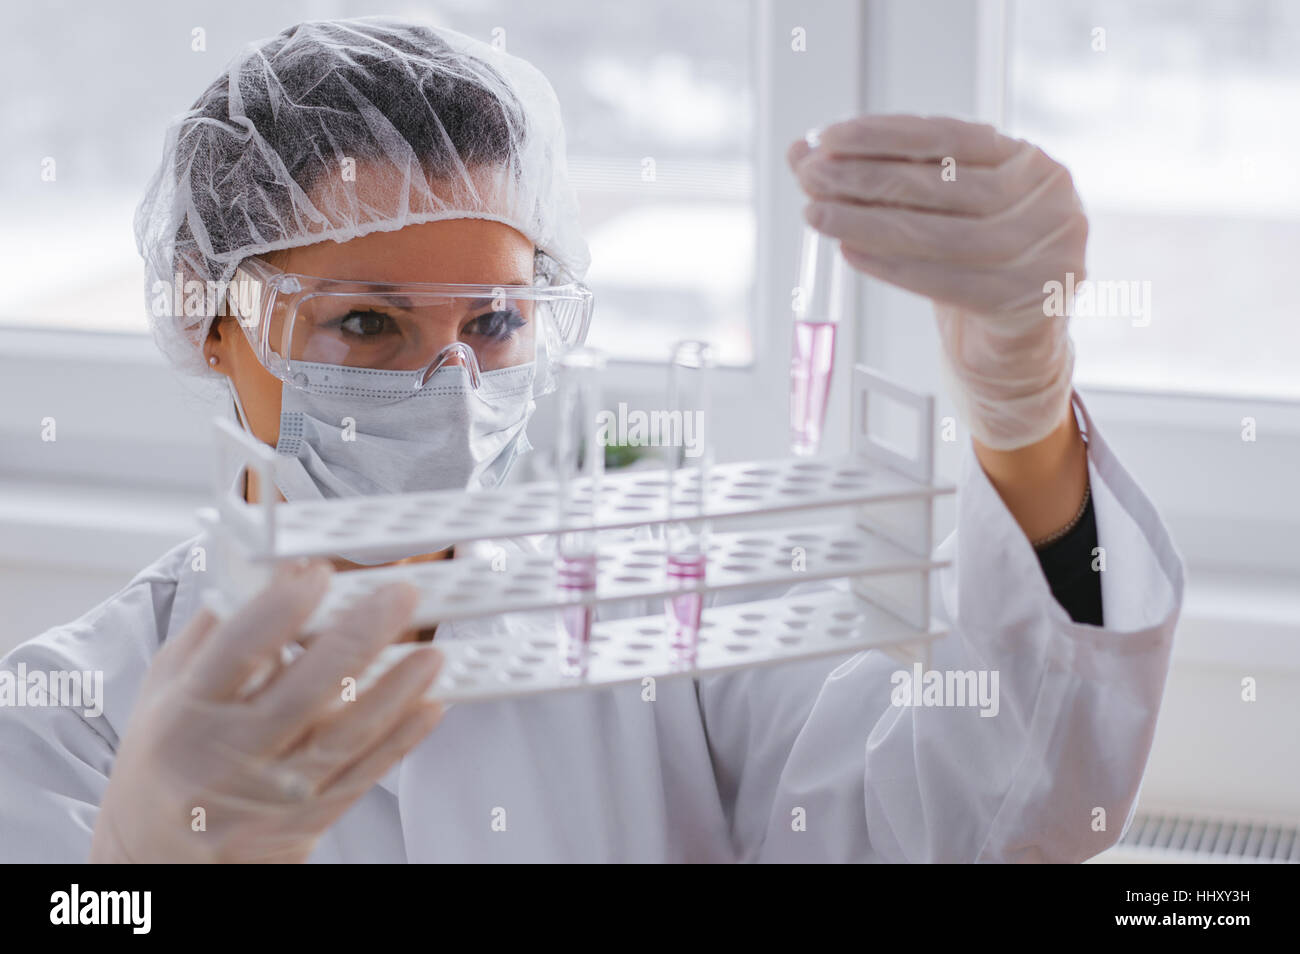 Serious female chemist working in laboratory - Stock Image